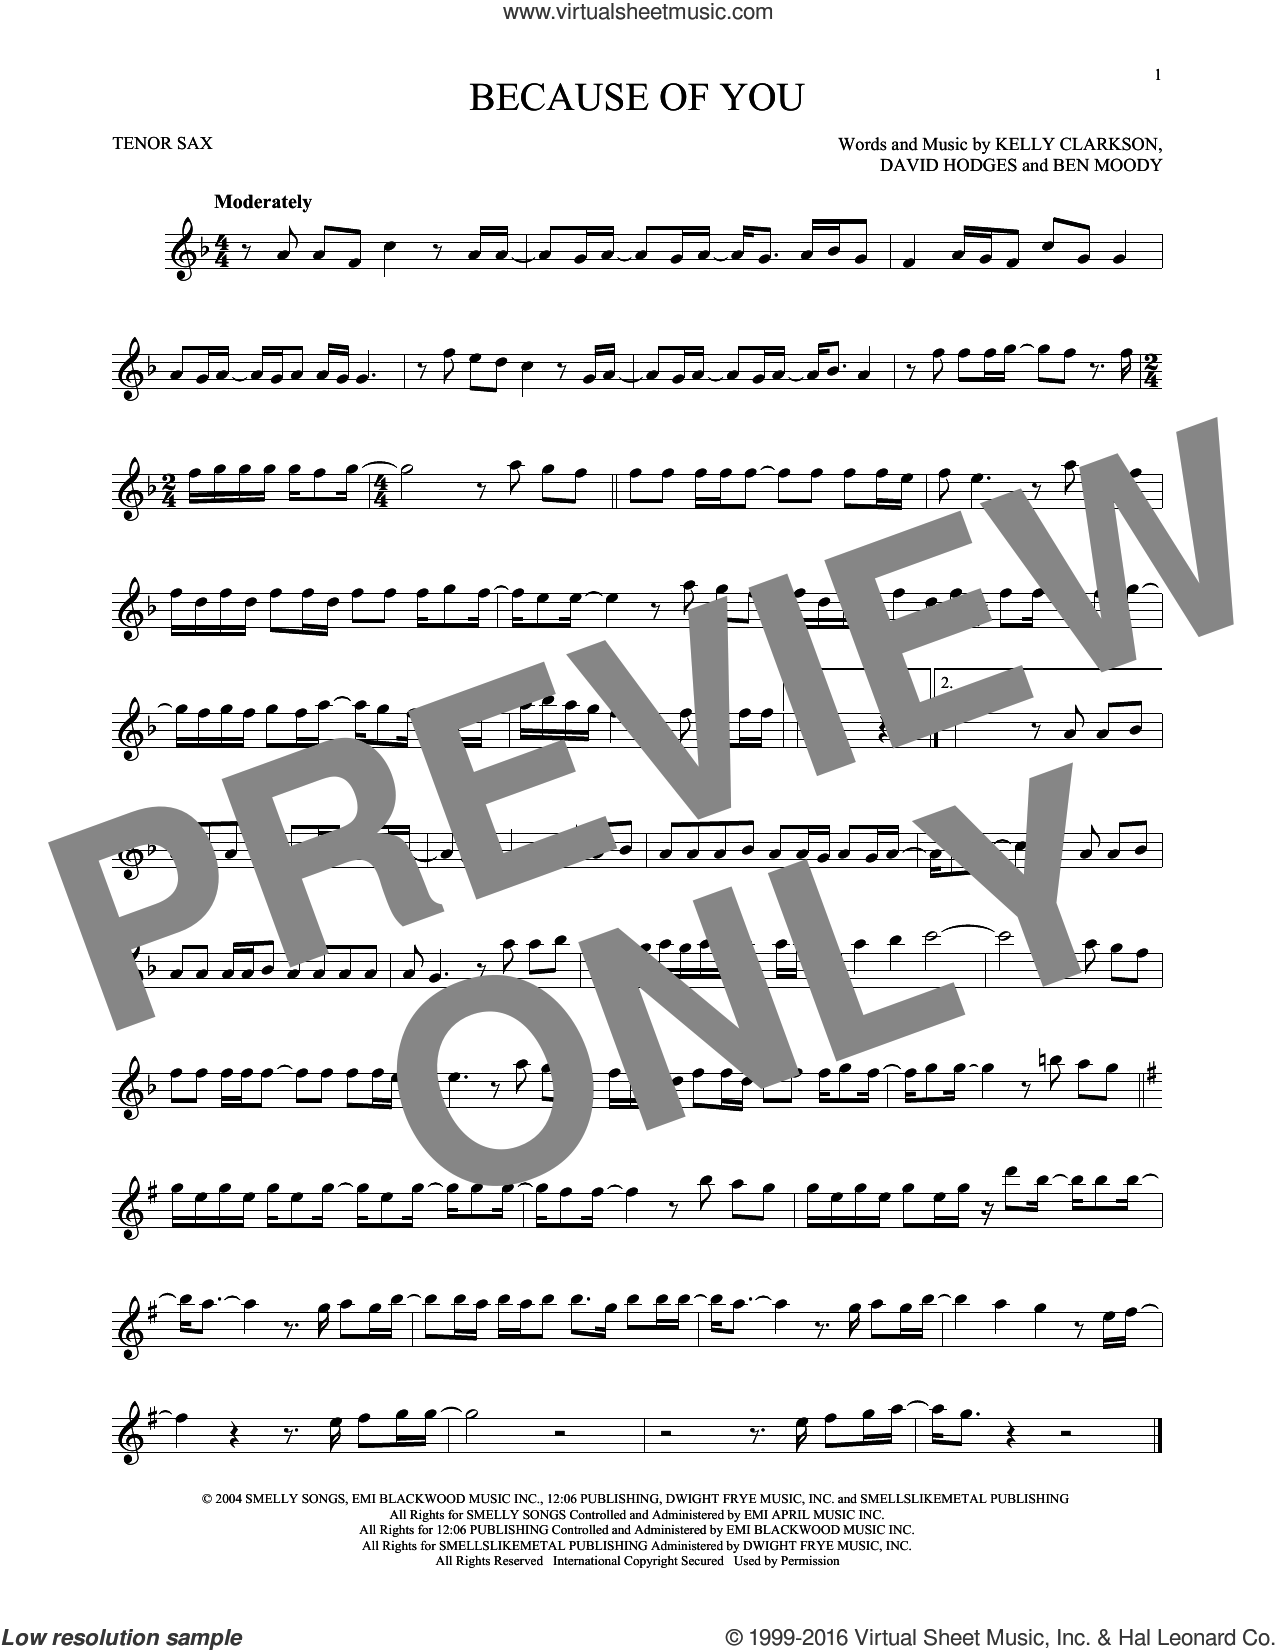 Because Of You sheet music for tenor saxophone solo by Kelly Clarkson, Ben Moody and David Hodges, intermediate